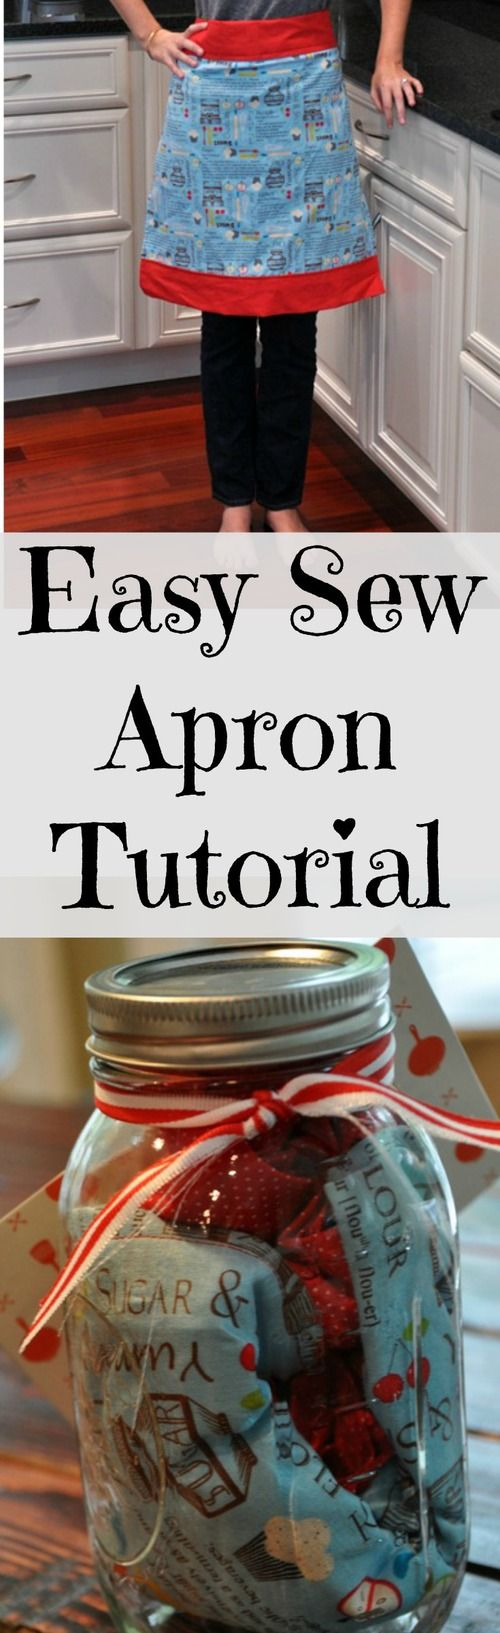 Easy Sew Apron in a Mason Jar